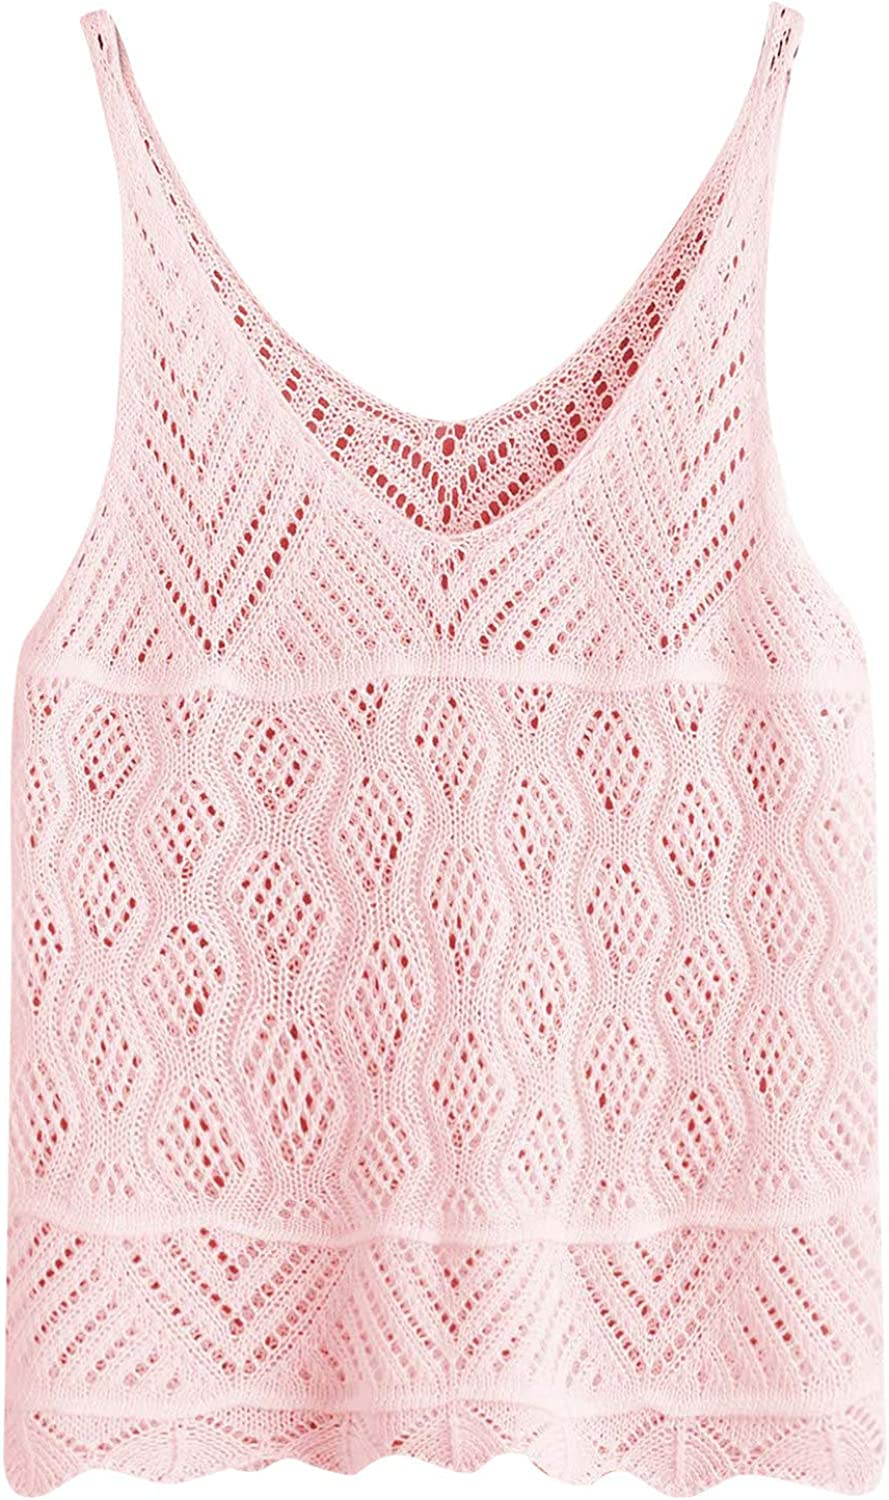 Women V Neck Knitted Sweaters Vests Sleeveless Autumn Winter Plus Size Casual Pullover Sweater Tops